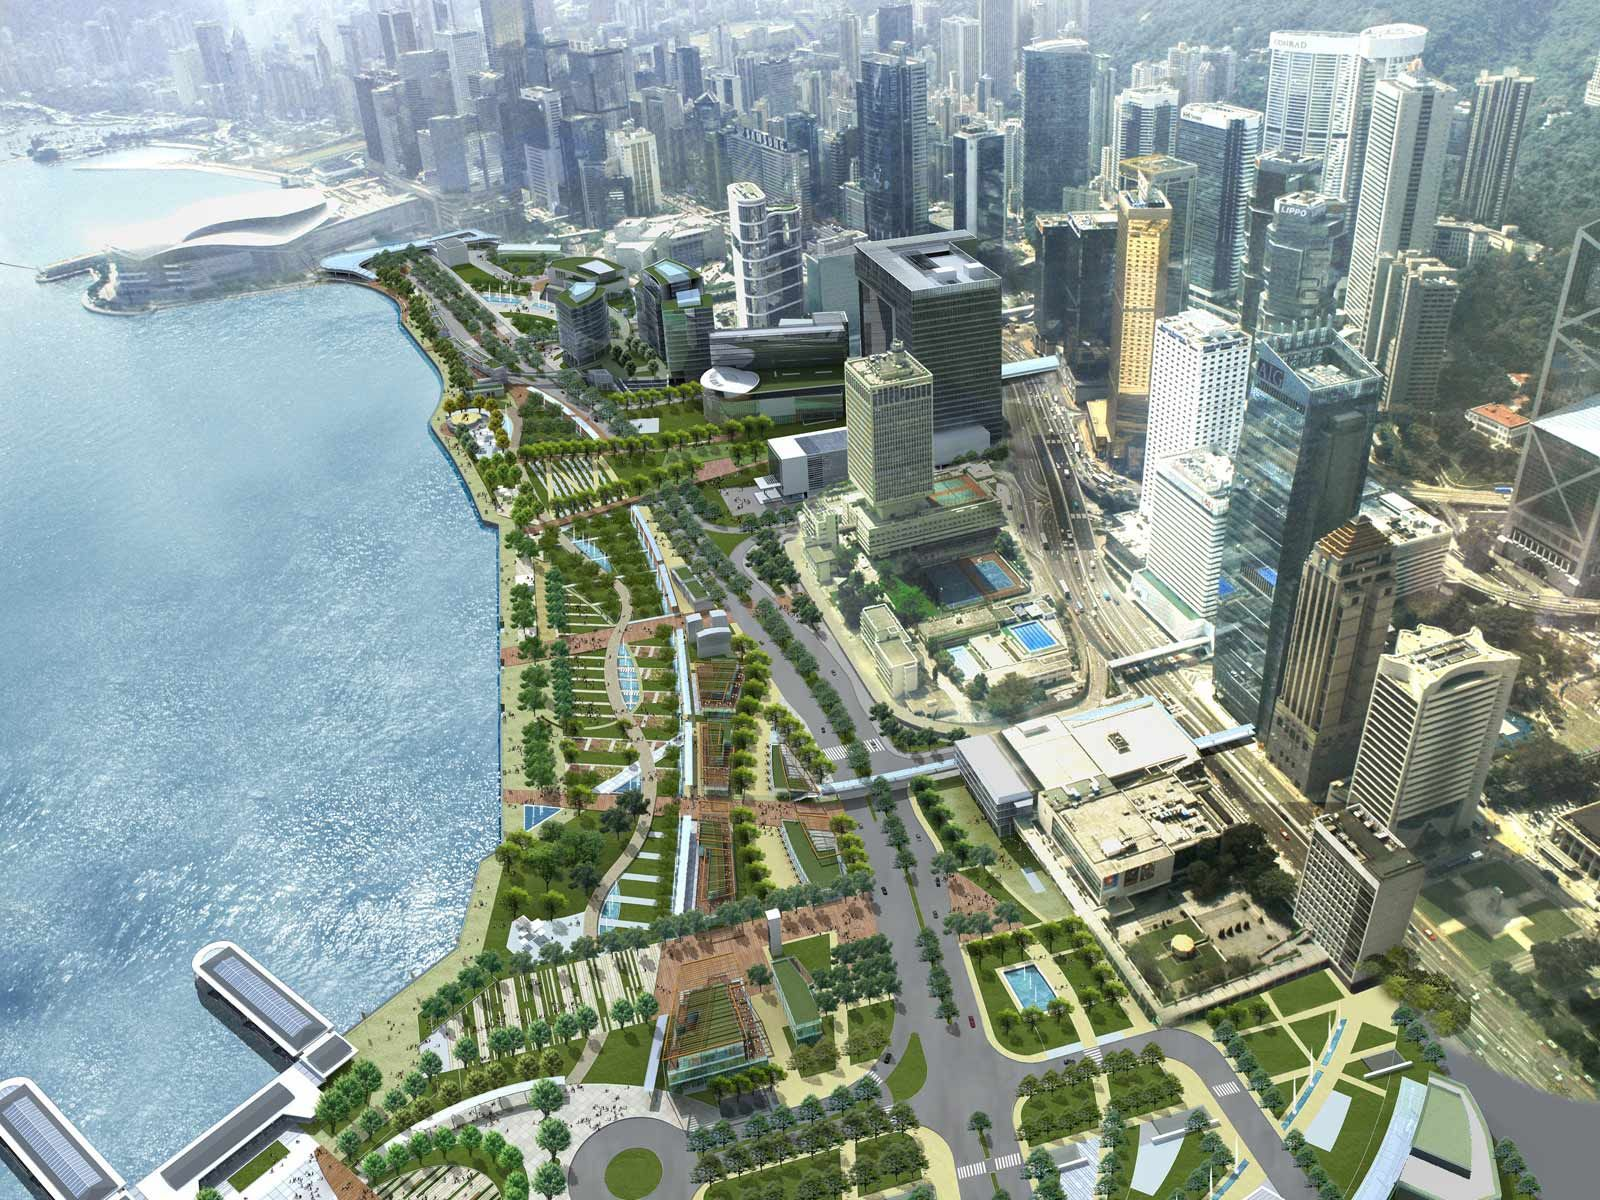 Central Reclamation Urban Design Study Urban Design Pinterest Urban Design Landscape